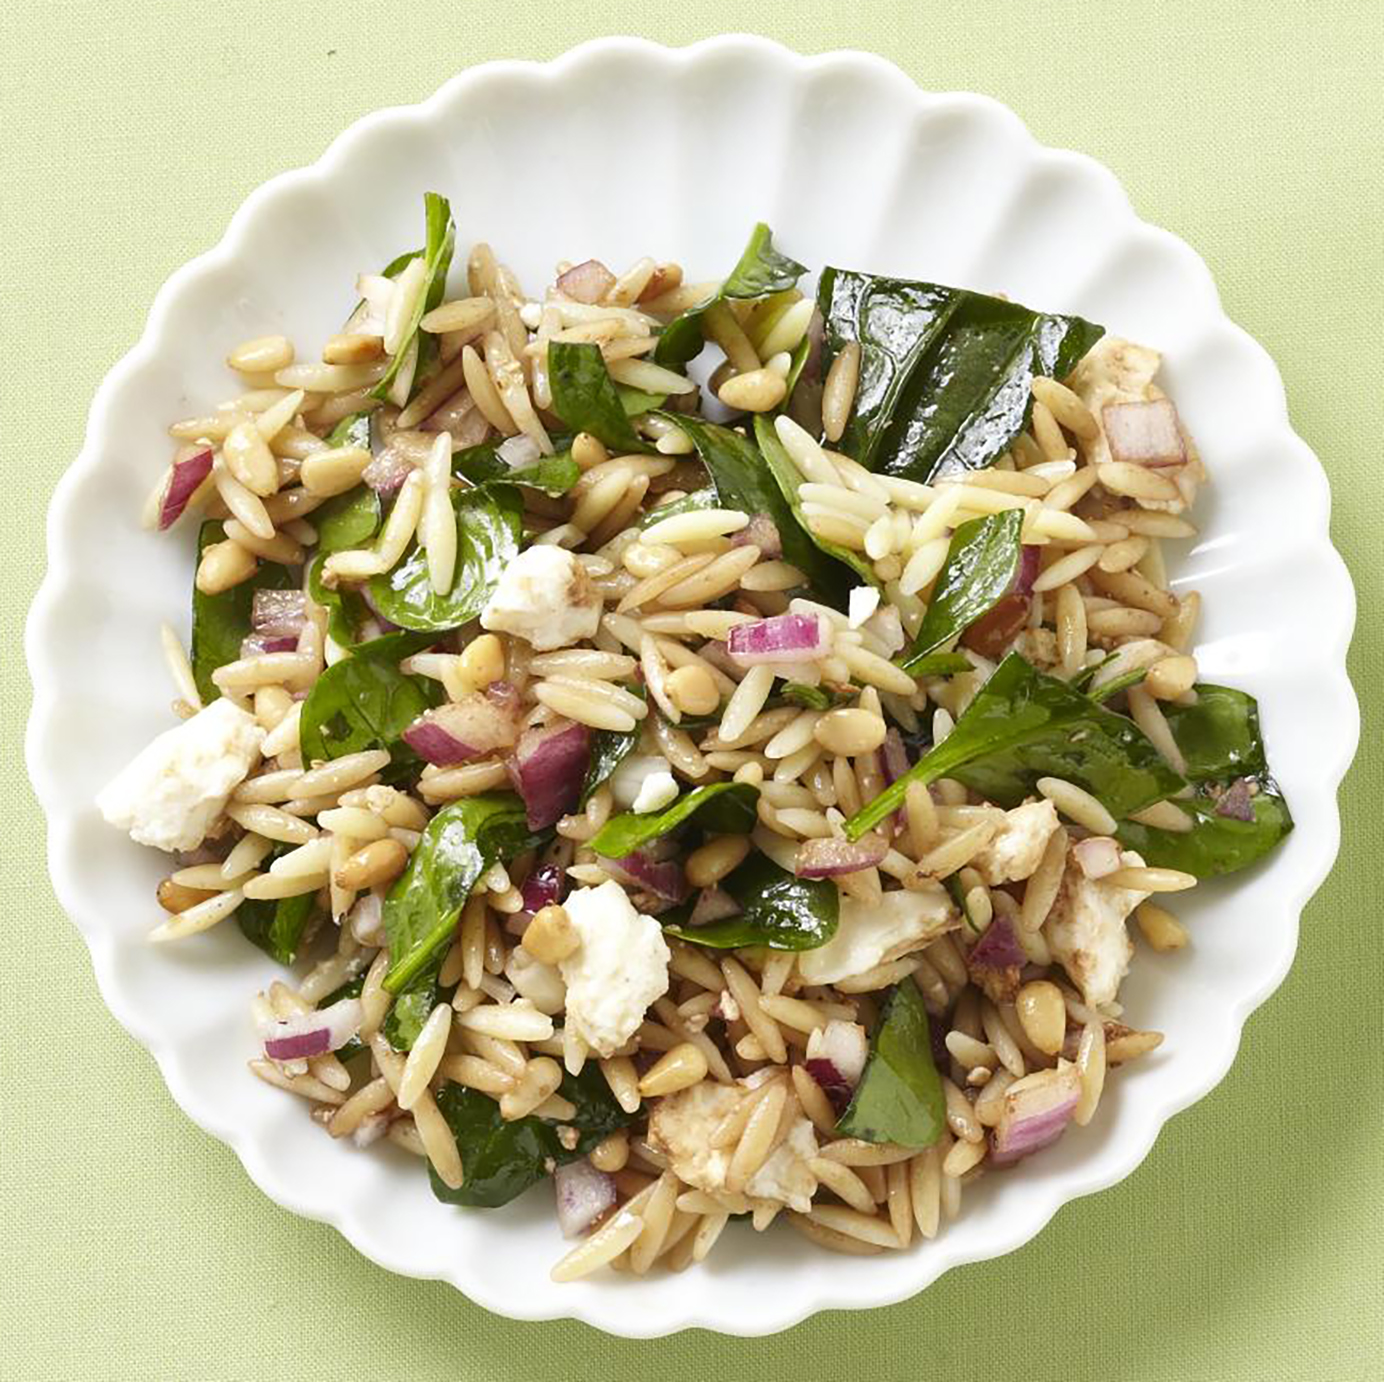 Spinach and Orzo Salad in a white bowl